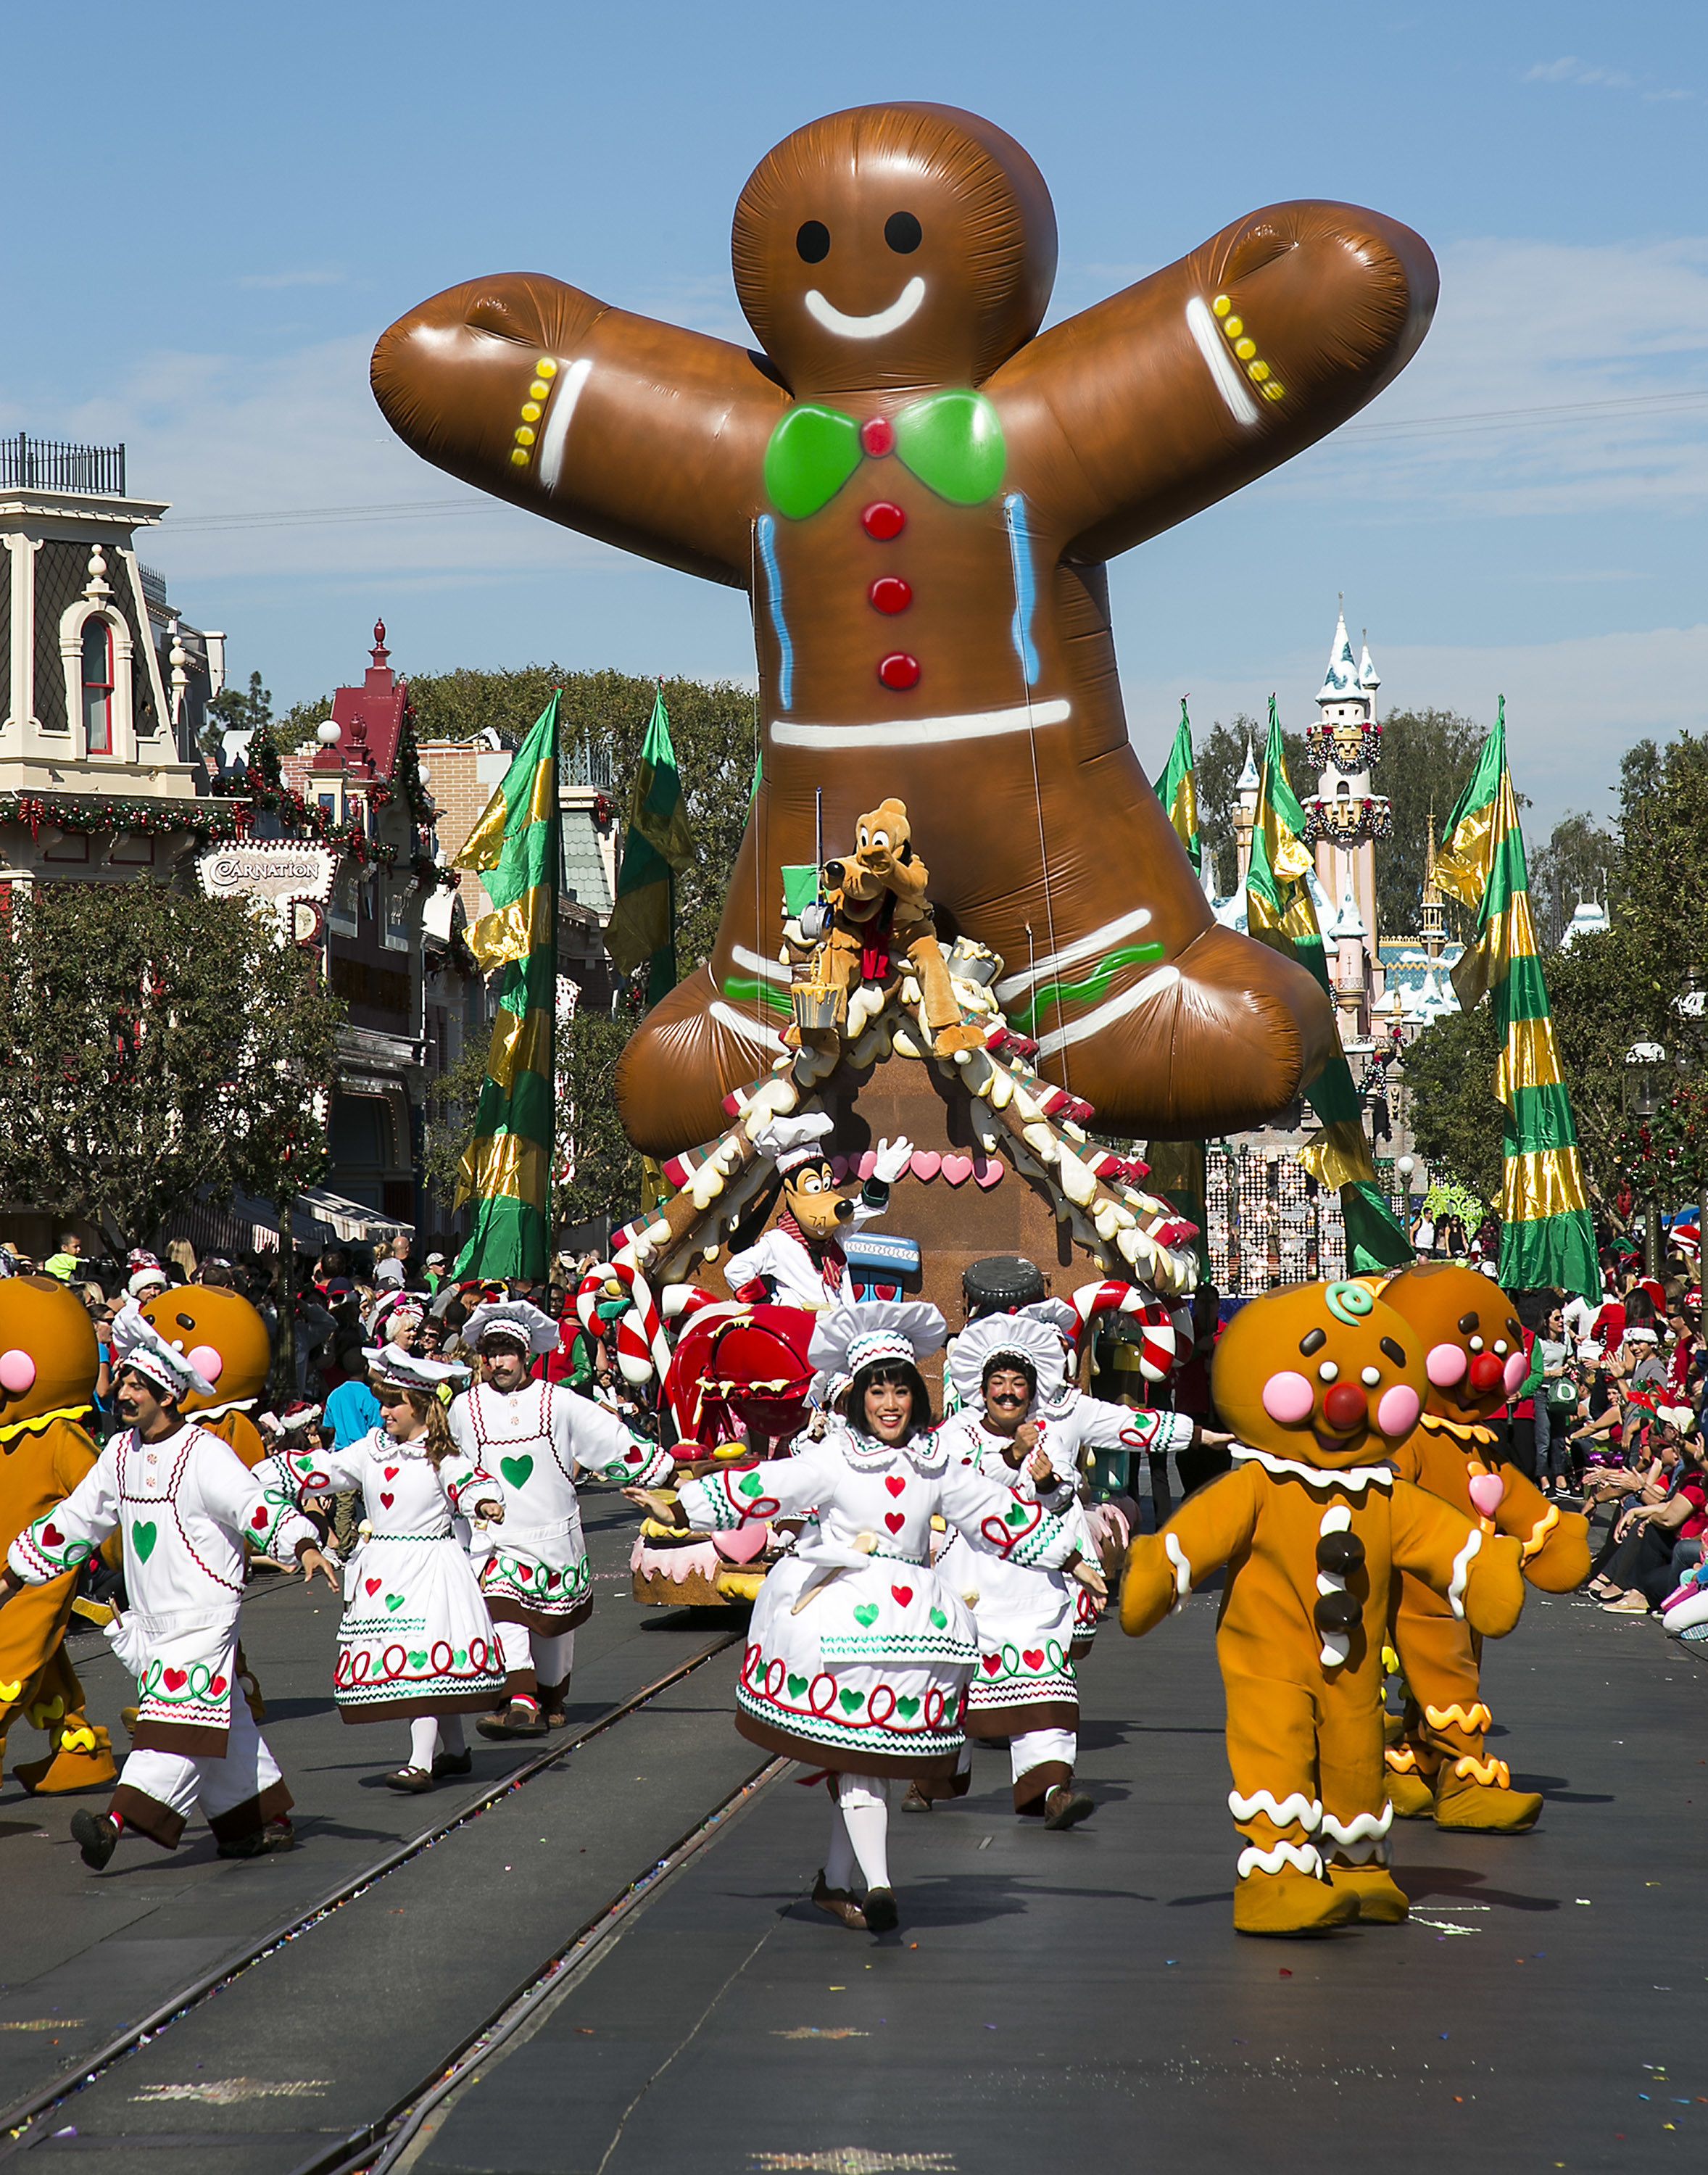 Holiday floats and performers fill Main Street U.S.A at Disneyland